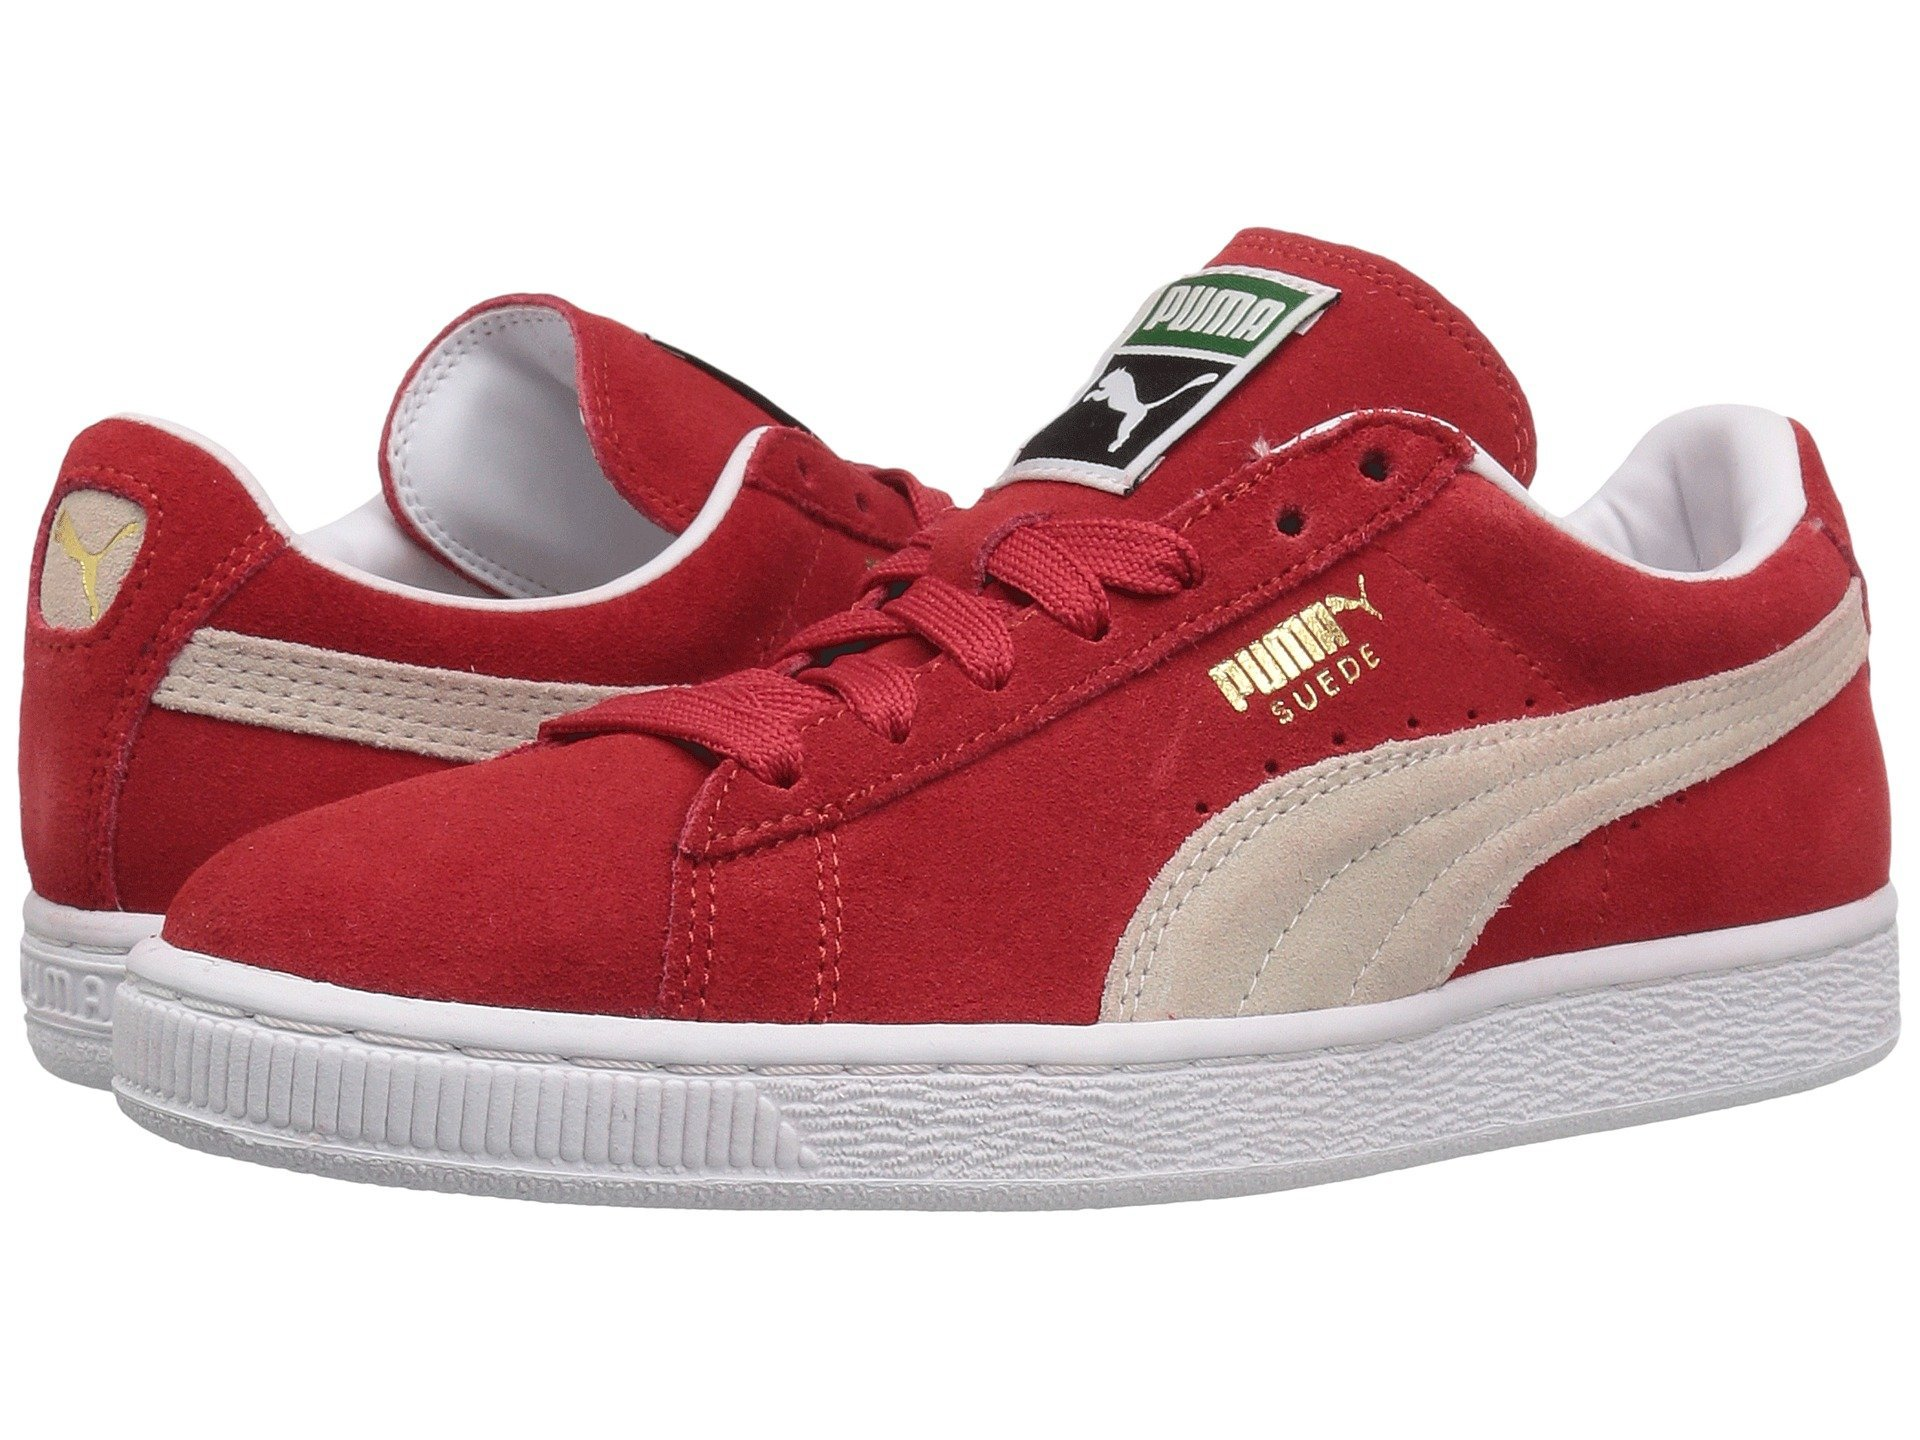 official photos ee476 d96a6 Galleon - PUMA Suede Classic Sneaker,High Risk Red White,7.5 M US Men s